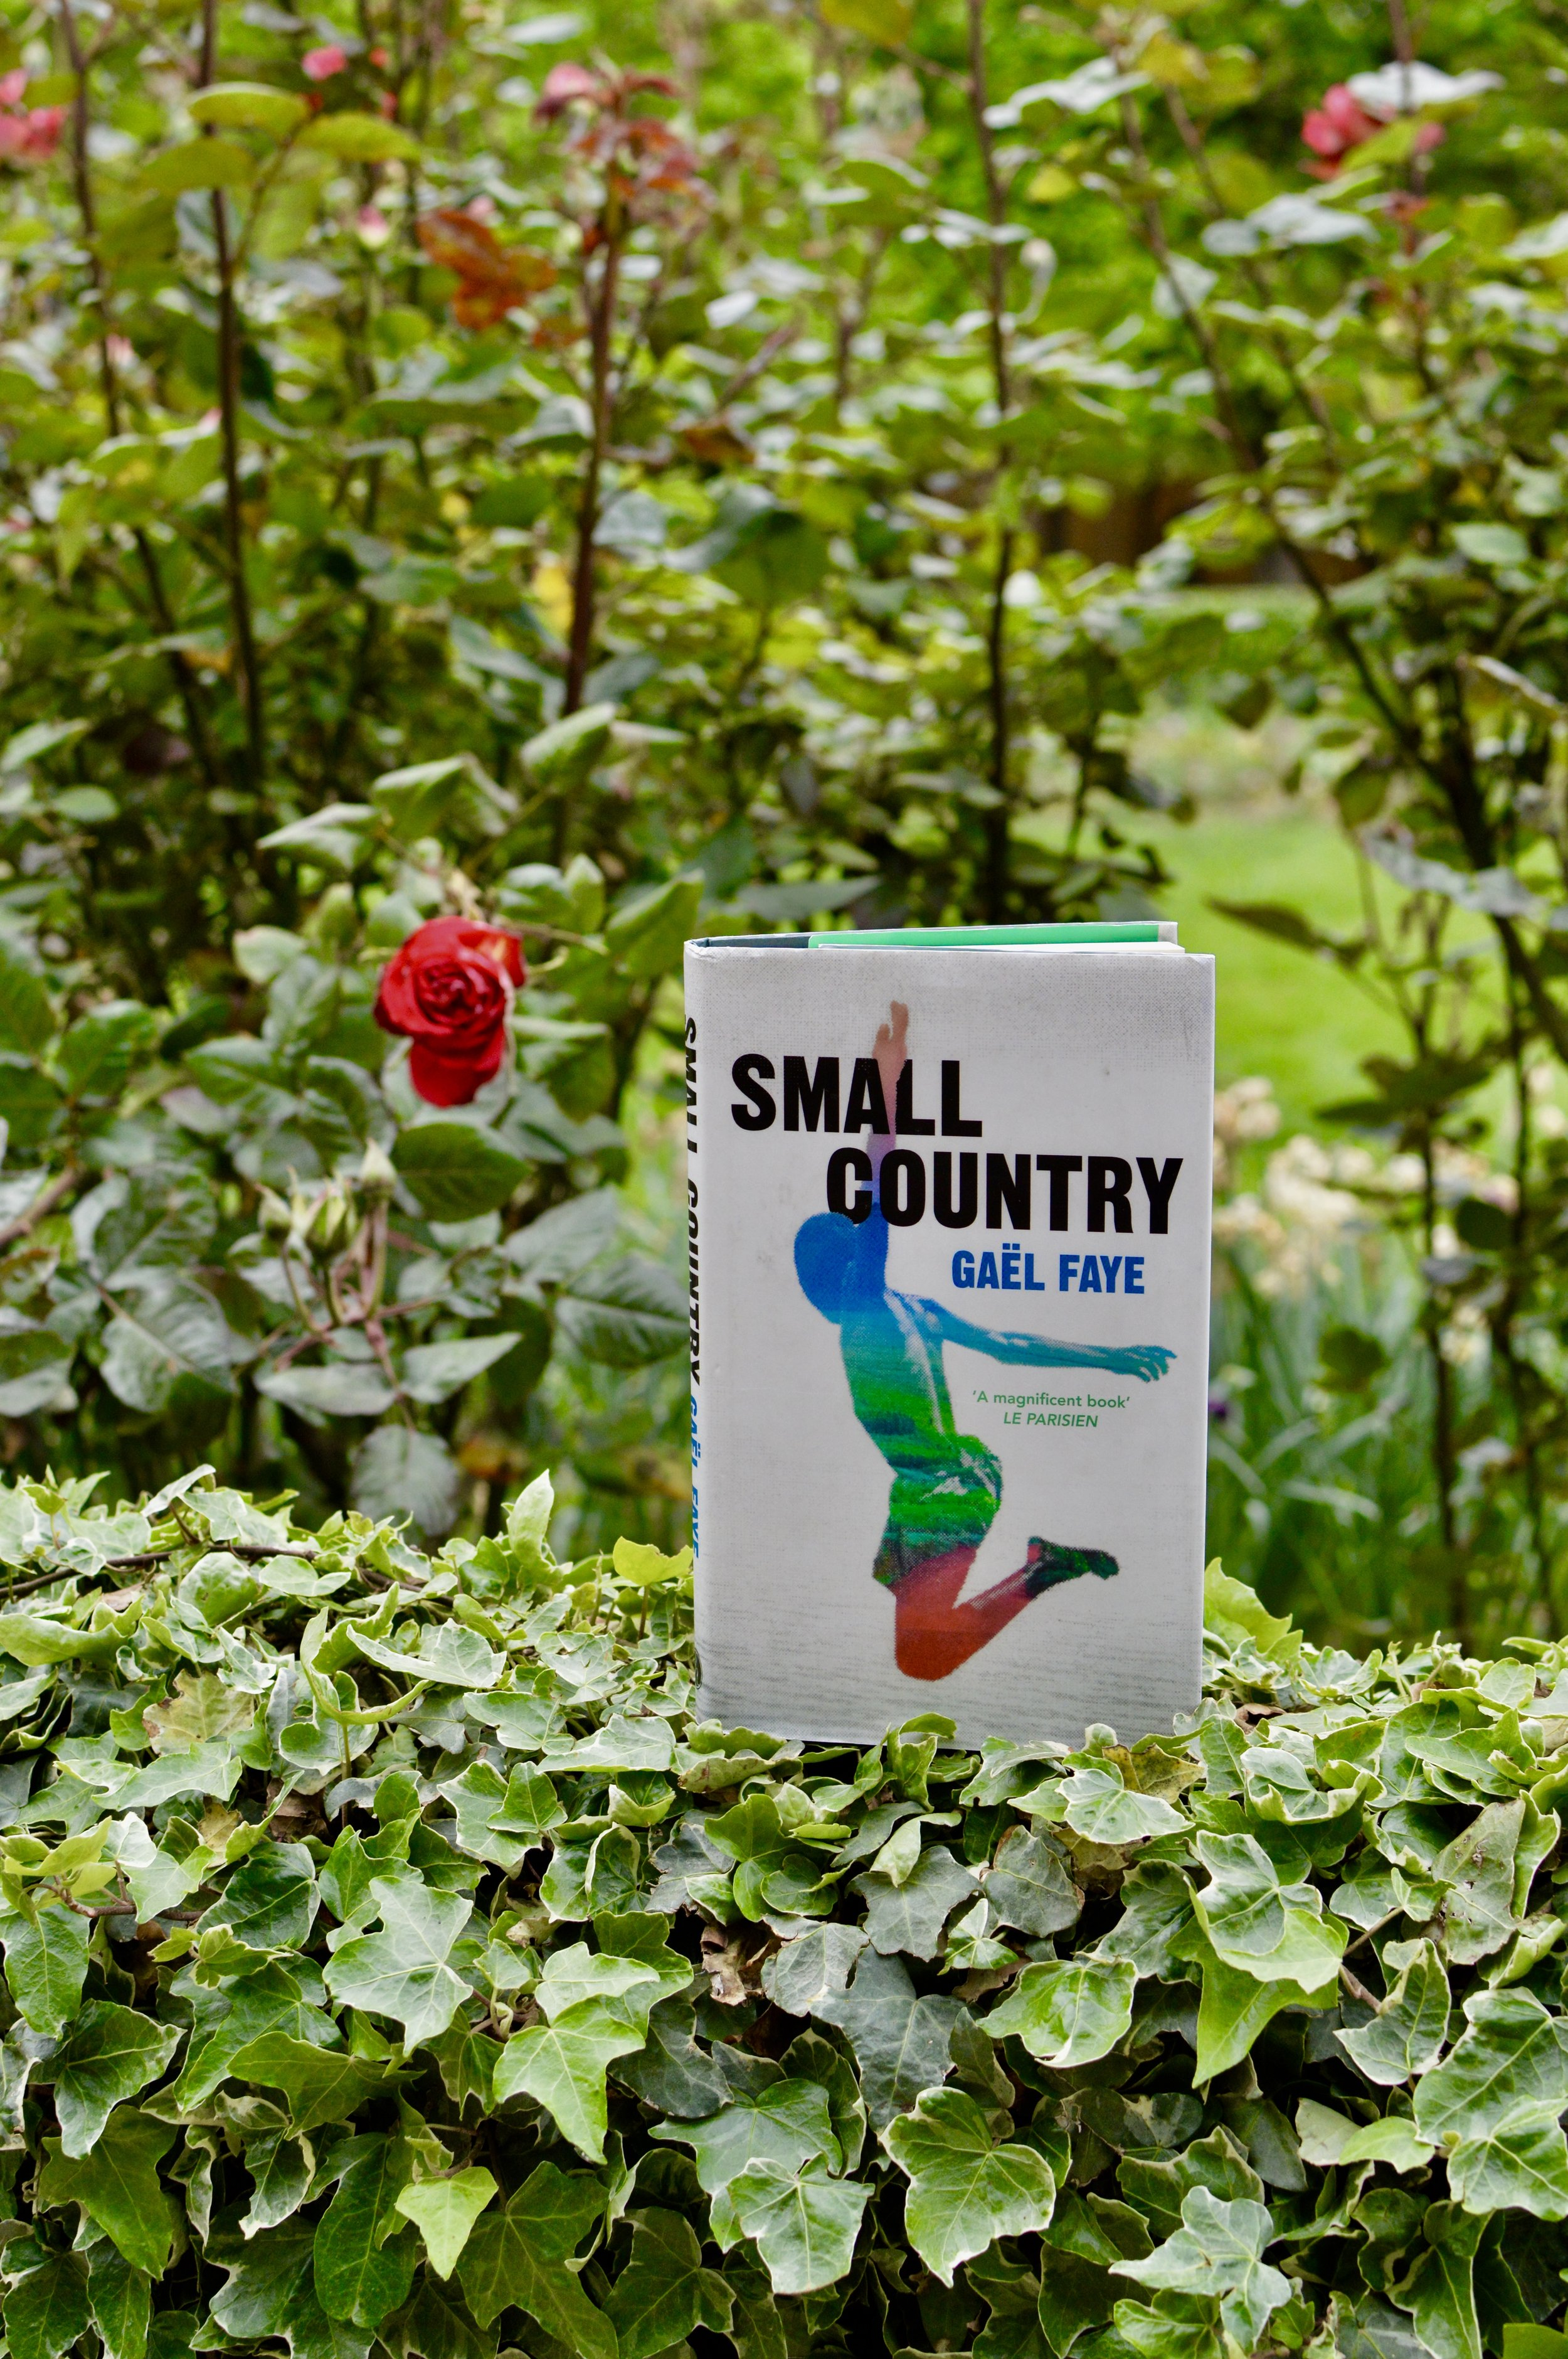 Reflections on Small Country by Gaël Faye - Blog Post Written by Jacqueline Ménoret